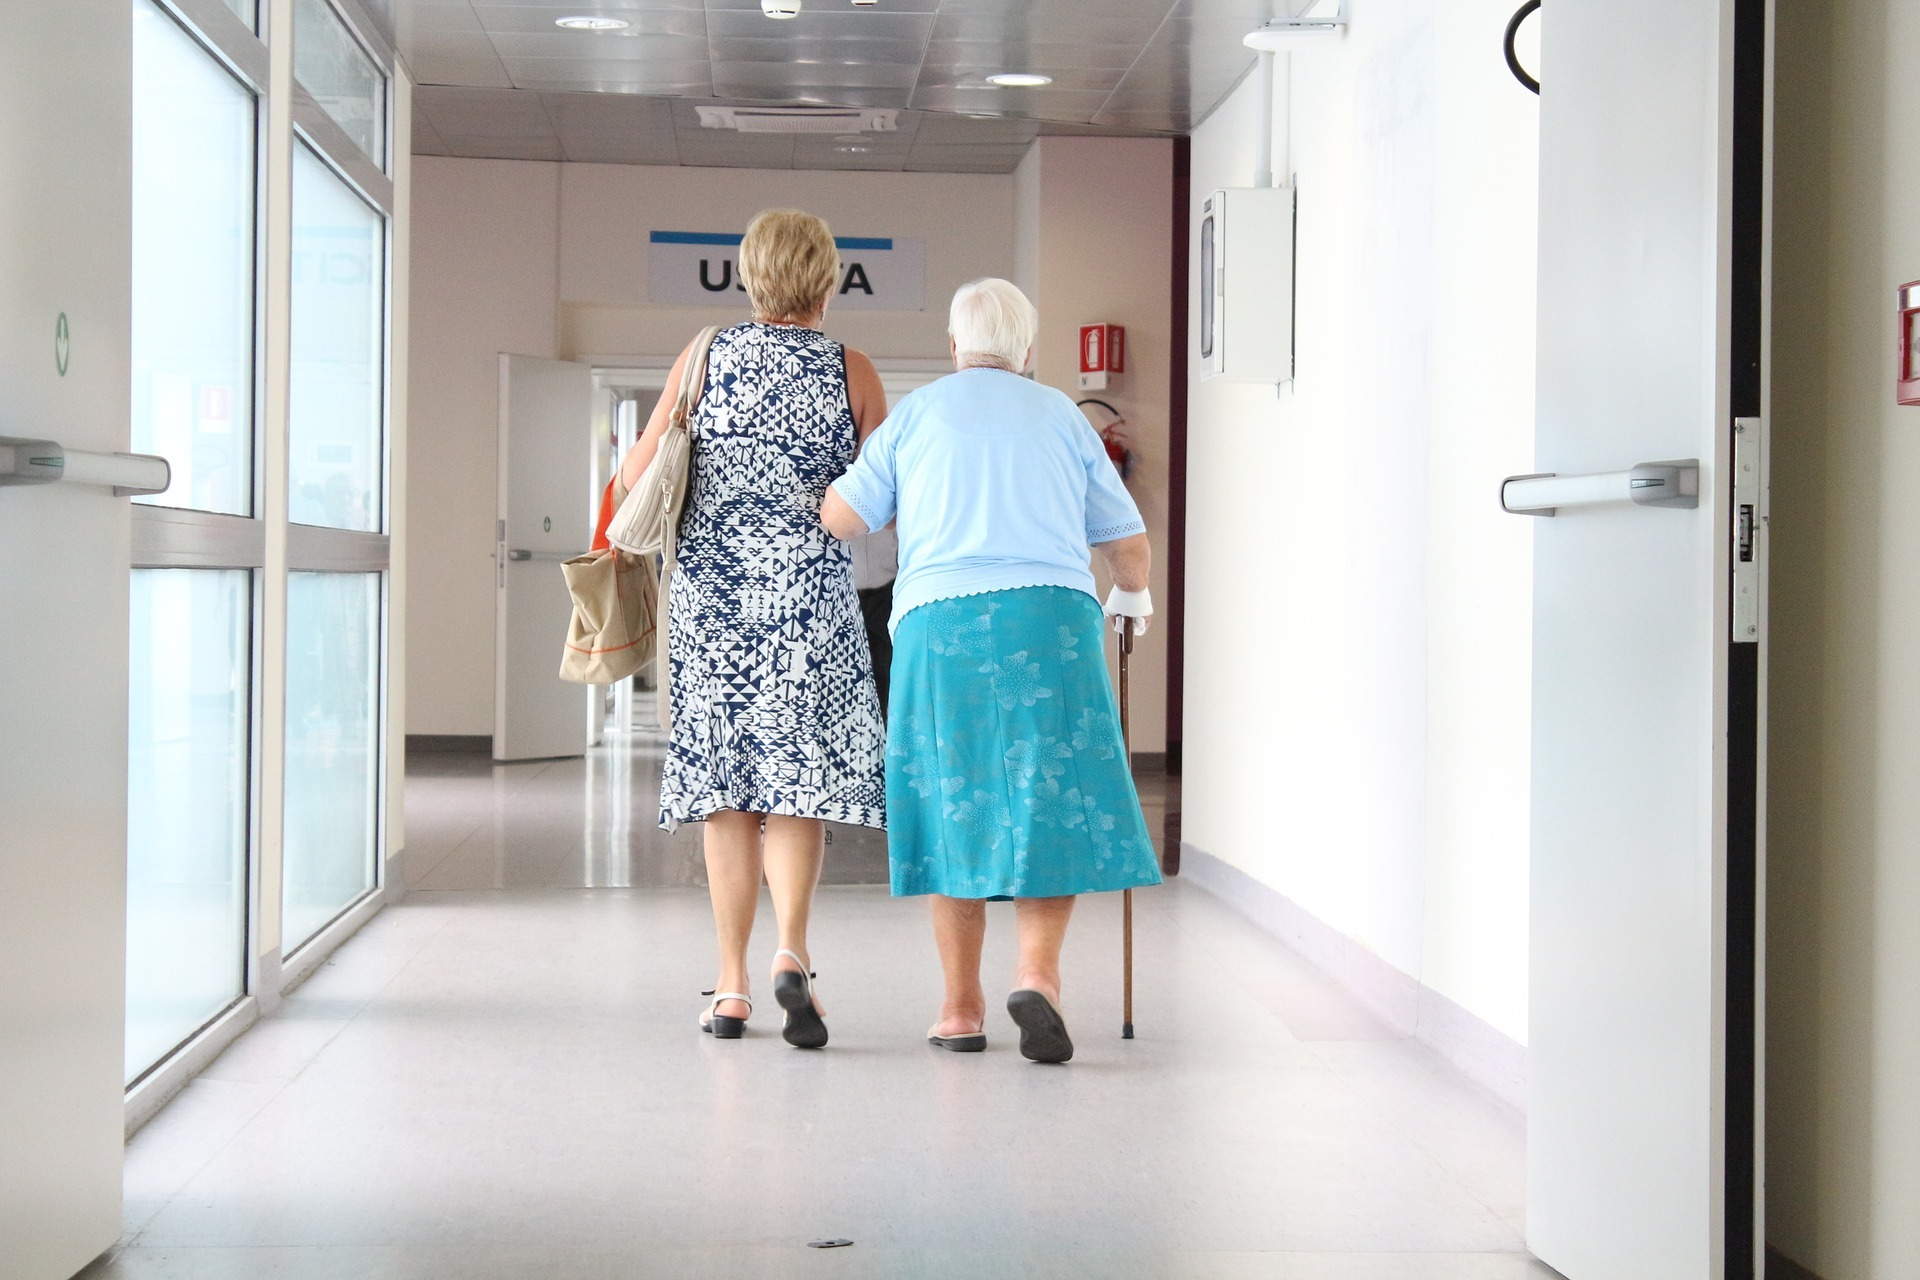 Two women walk, linking arms, down a hospital corridaor